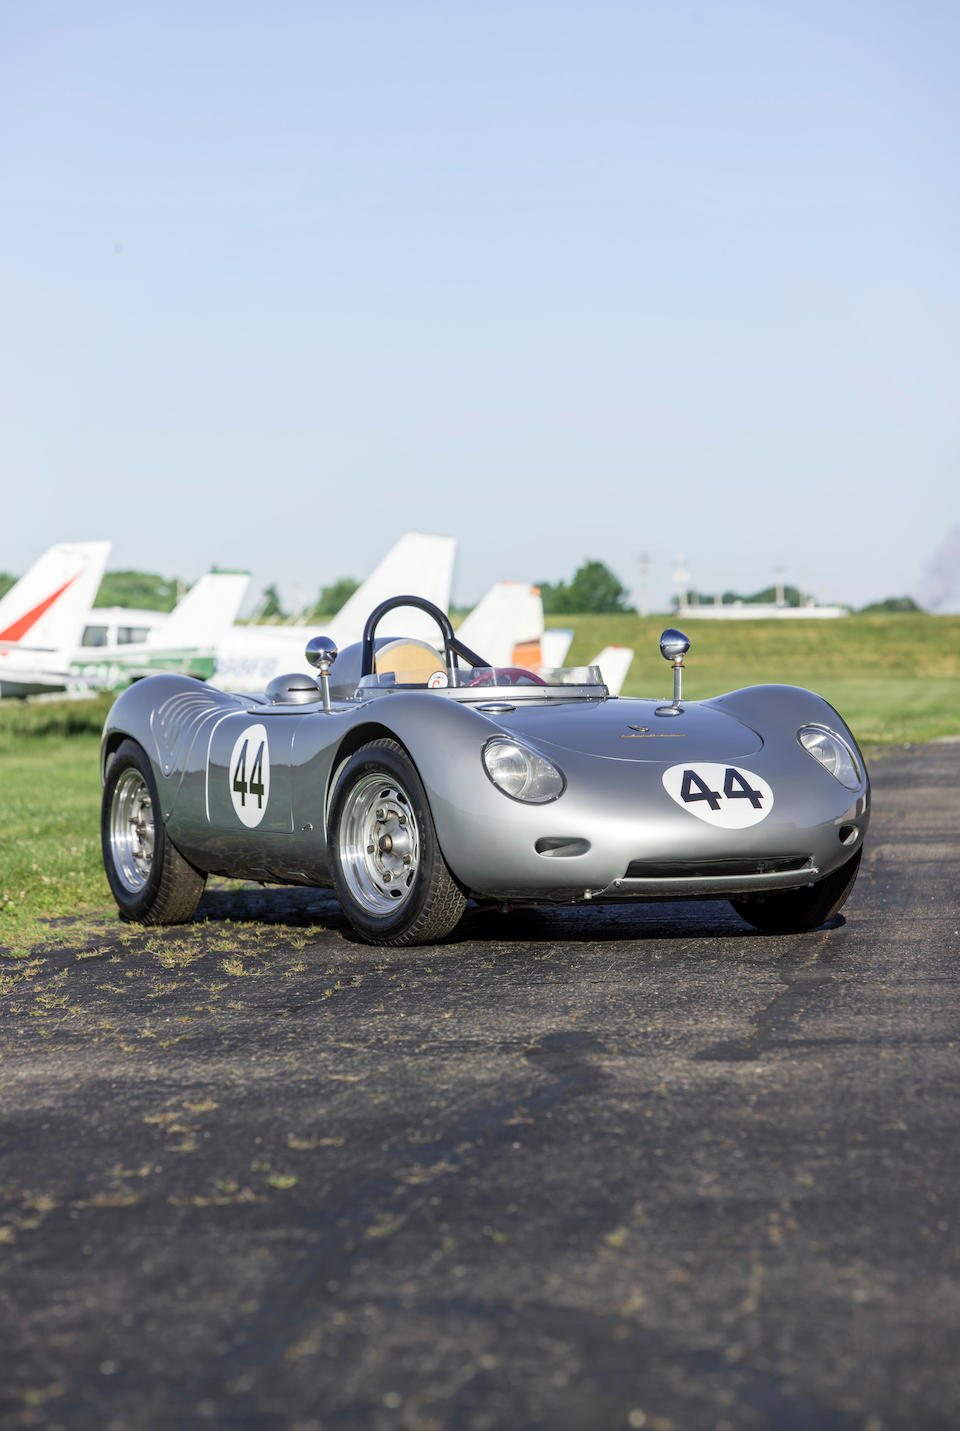 <b>1959 Porsche 718 RSK Center-Seat Spyder</b><br />Chassis no. 718-028<br />Engine no. 90220